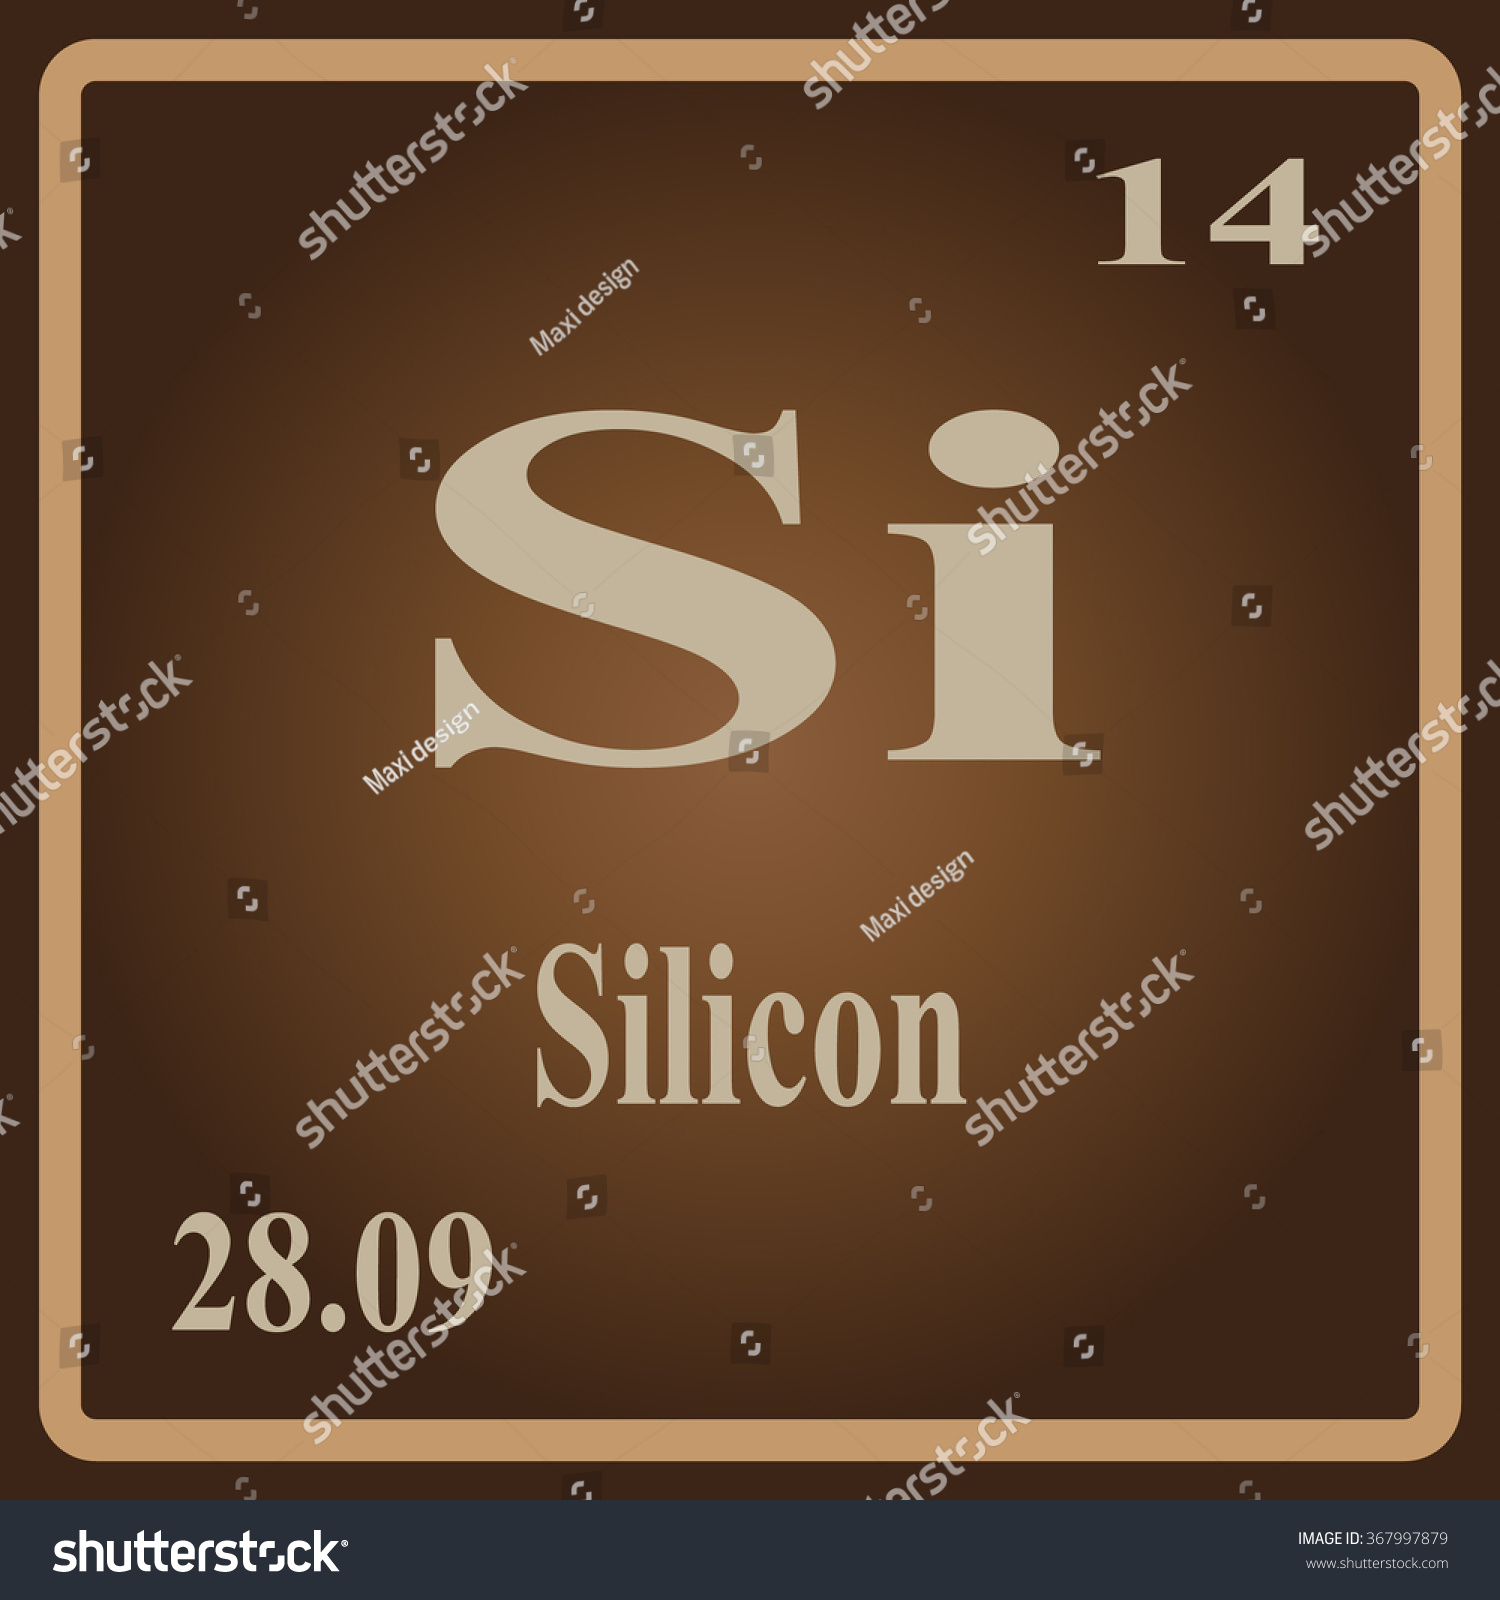 Periodic table elements silicon stock vector 367997879 shutterstock the periodic table of the elements silicon biocorpaavc Gallery